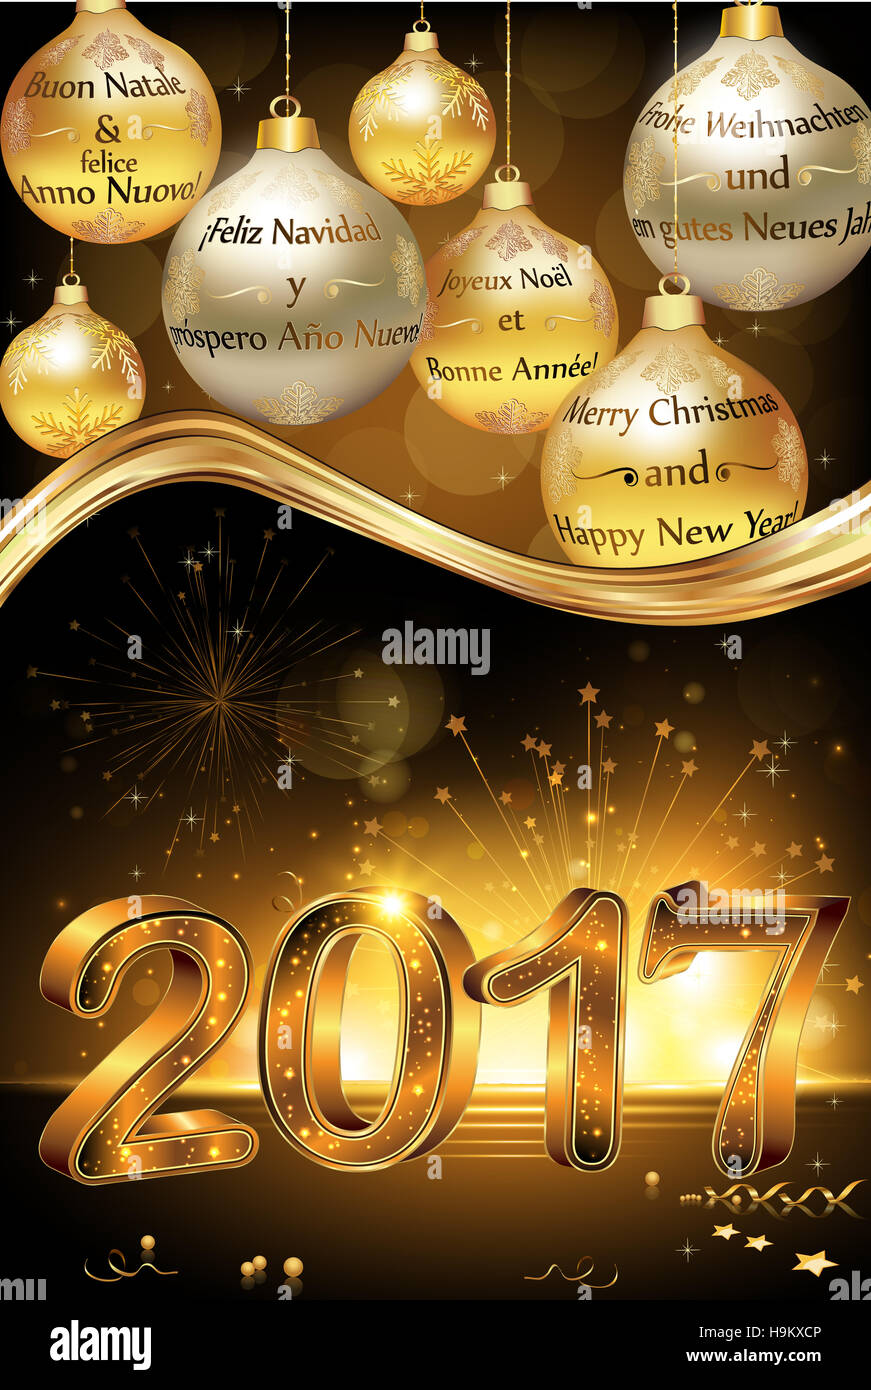 happy new year 2017 greeting card card with message in many languages english